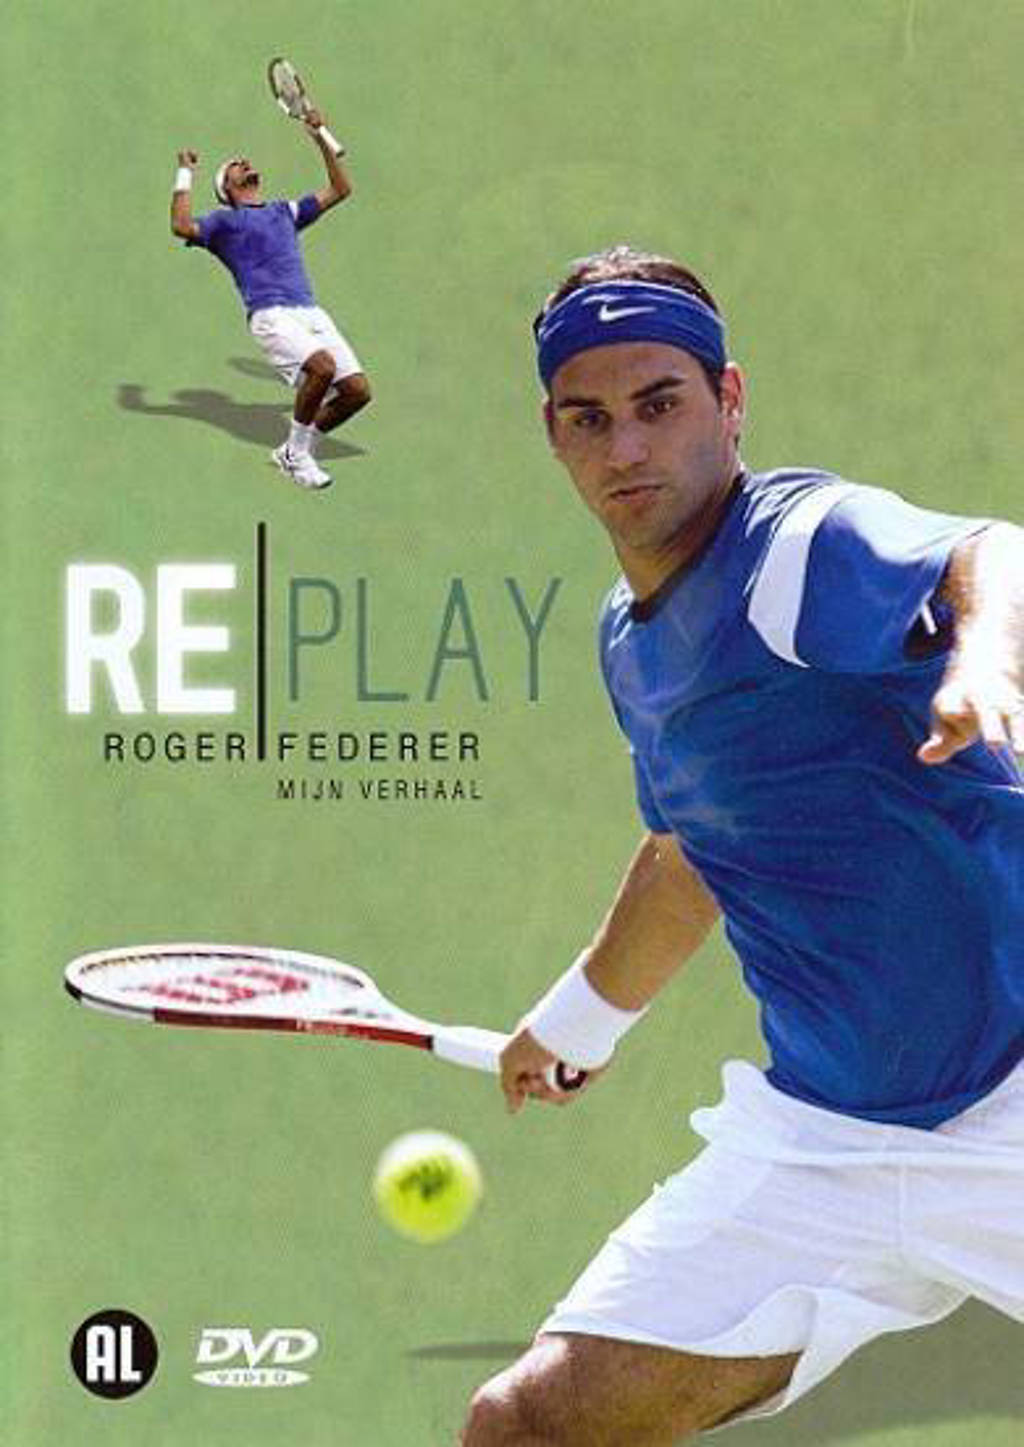 Roger Federer-Replay  (DVD)